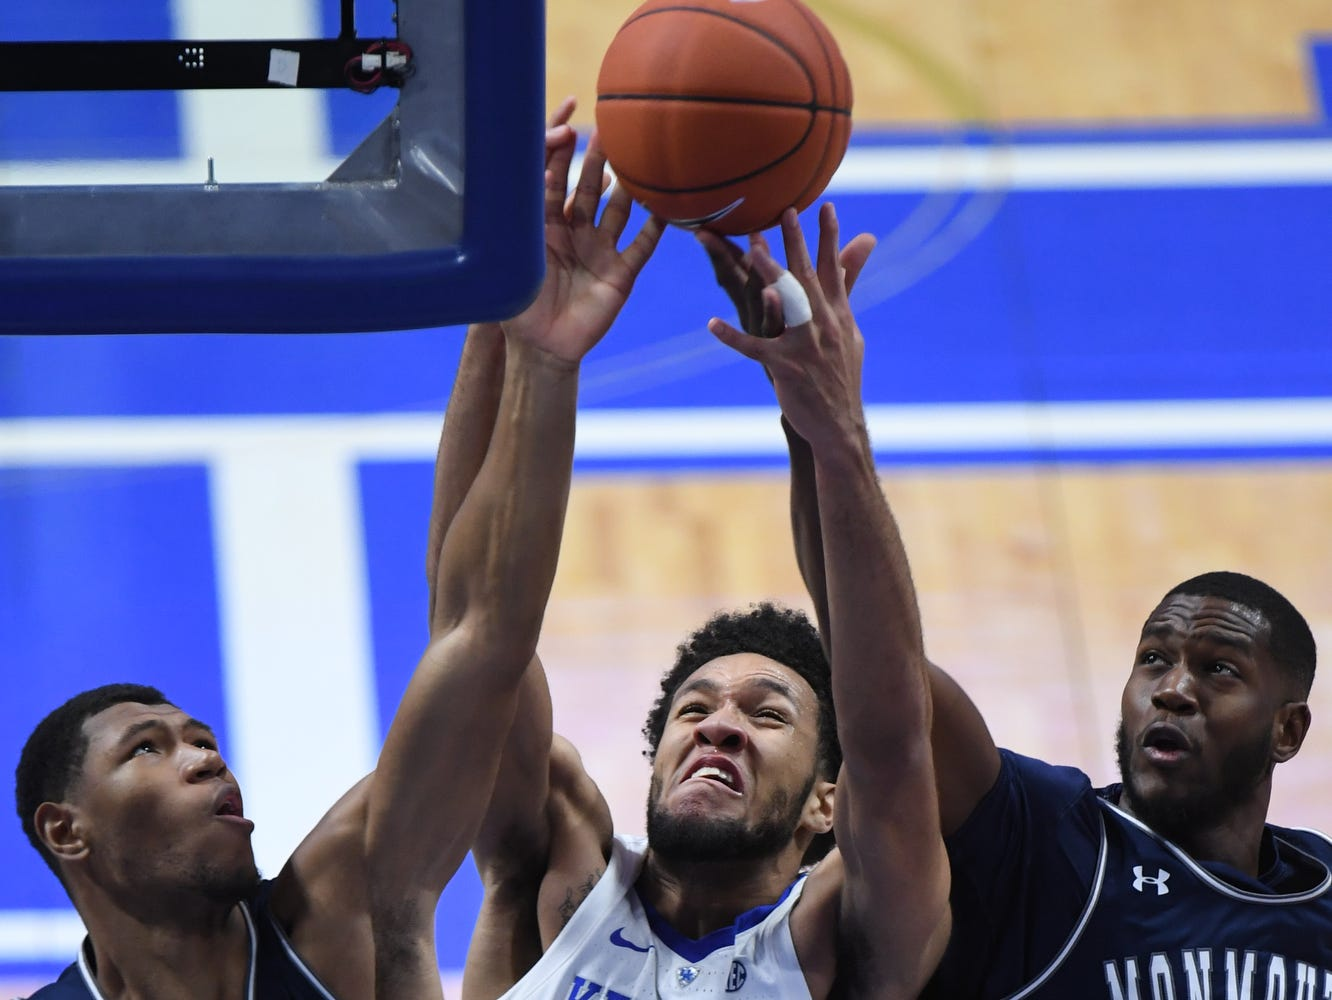 UK F EJ Montgomery grabs a rebound during the University of Kentucky mens basketball game against Monmouth at Rupp Arena in Lexington, Kentucky on Wednesday, November 28, 2018.